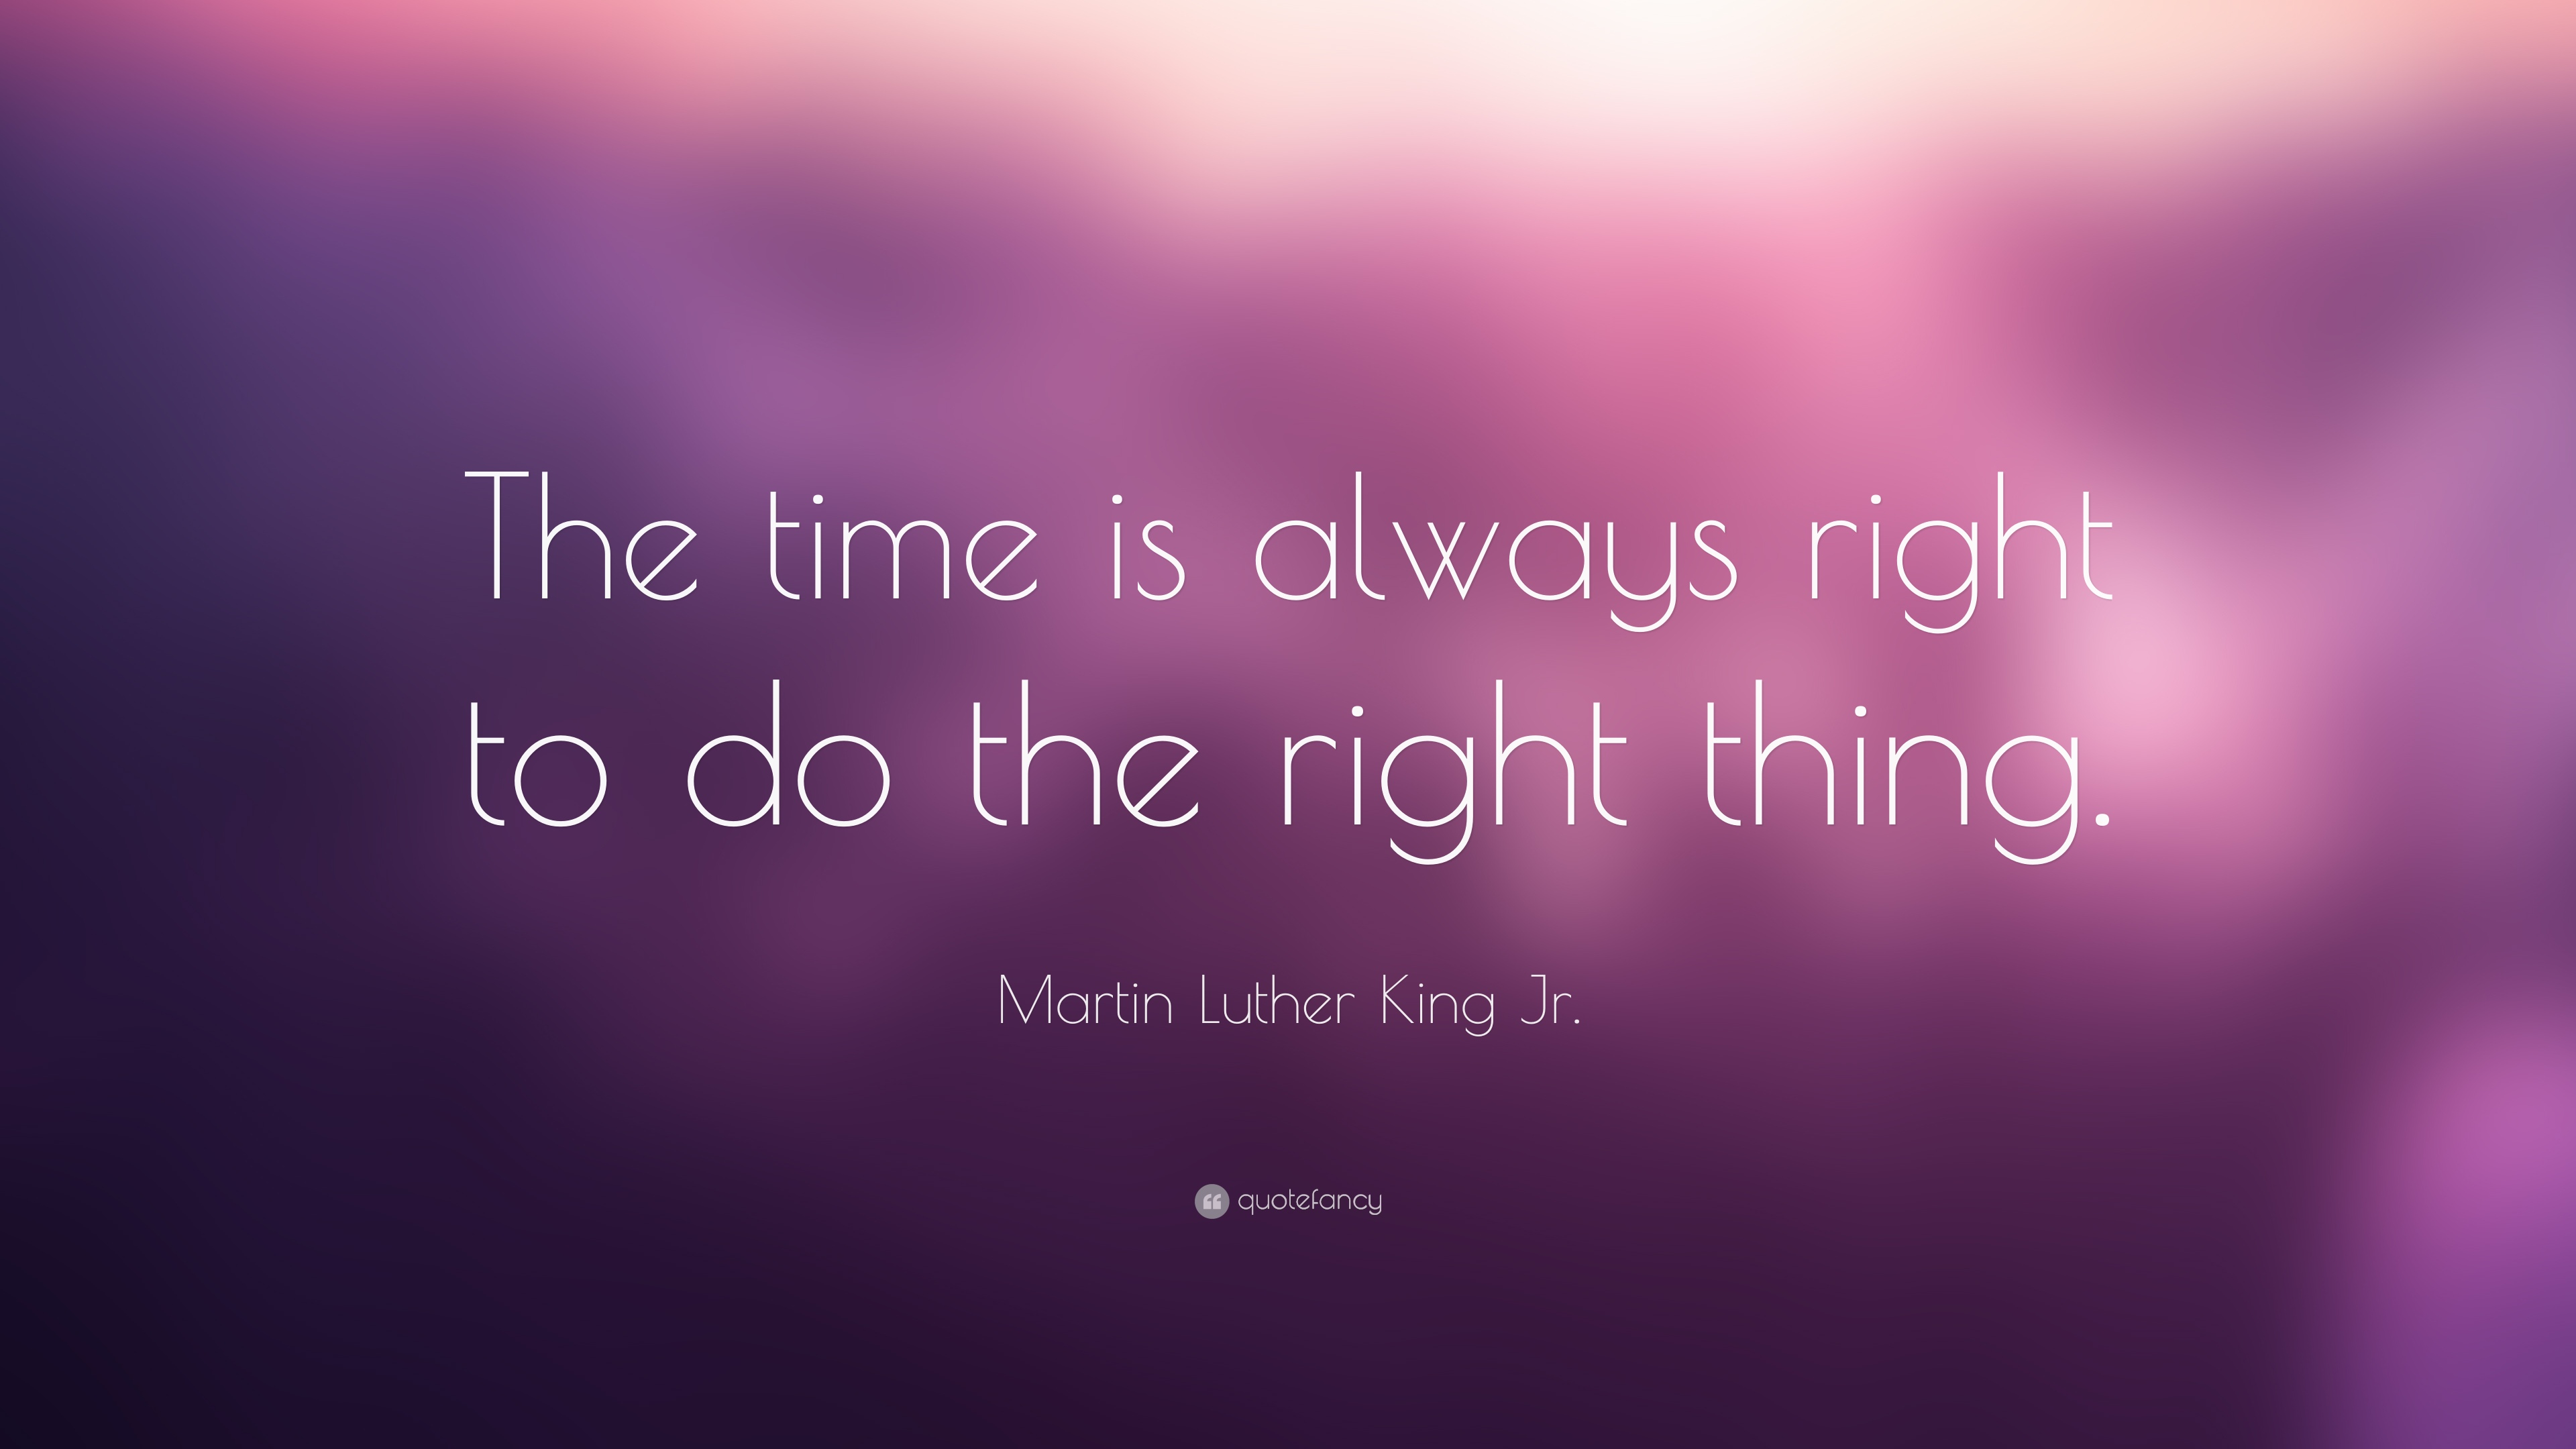 988-Martin-Luther-King-Jr-Quote-The-time-is-always-right-to-do-the